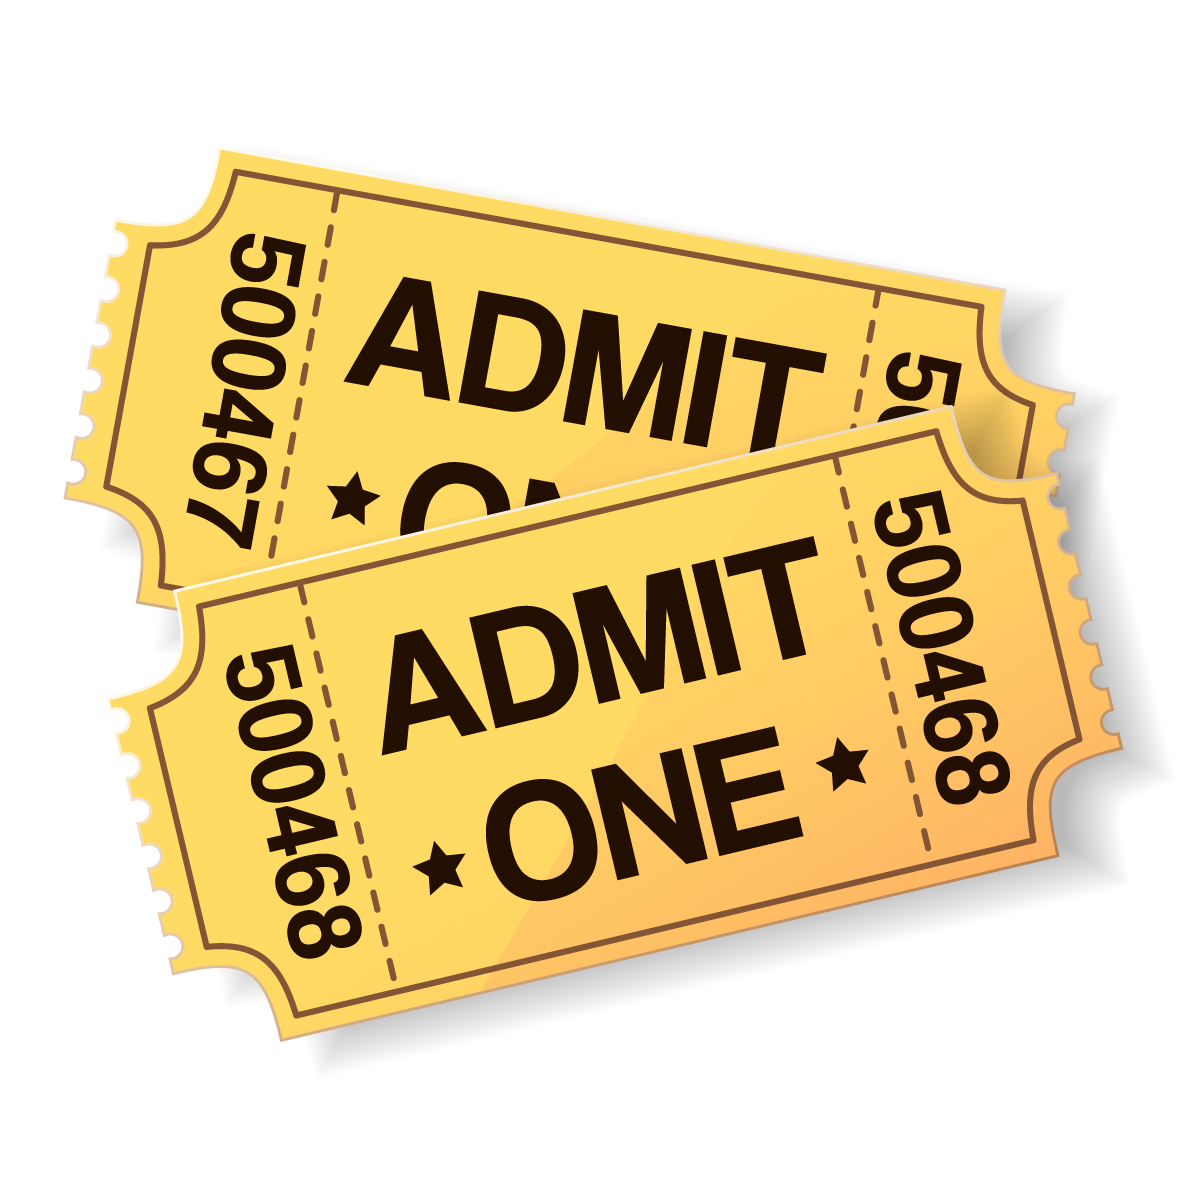 Tickets clipart game ticket, Tickets game ticket Transparent.